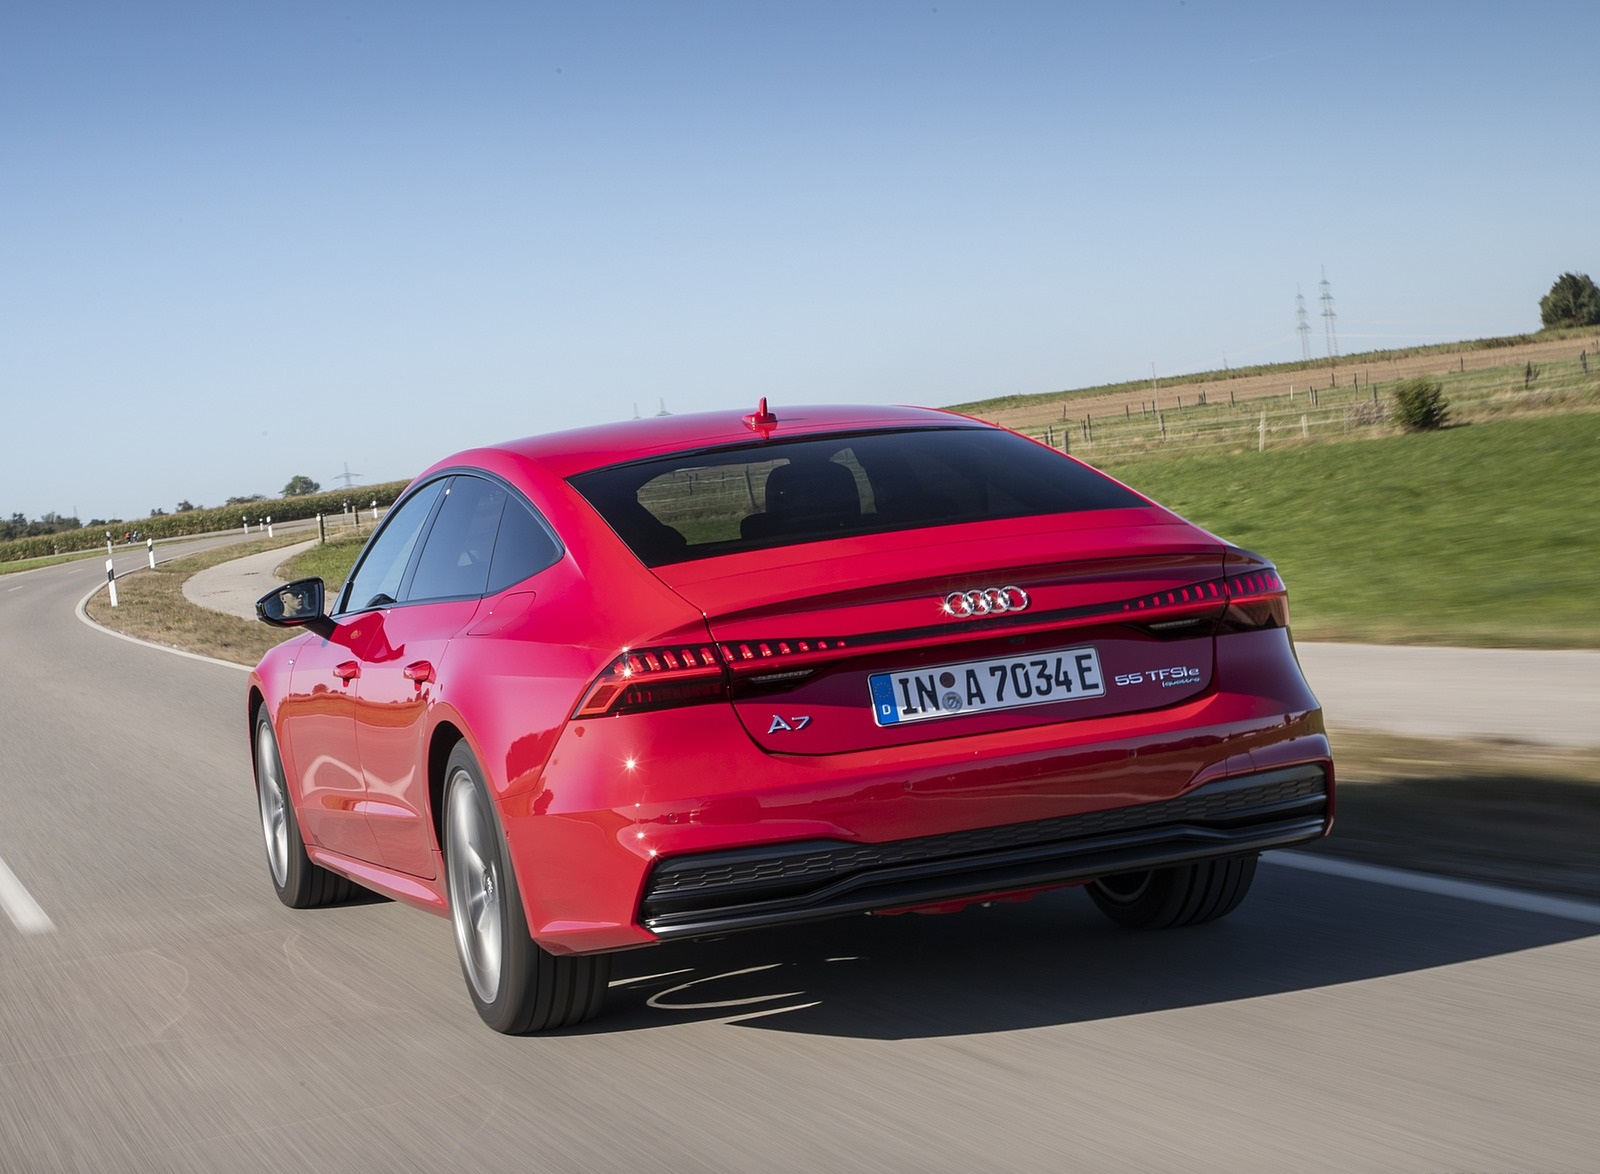 2020 Audi A7 Sportback 55 TFSI e quattro Plug-In Hybrid (Color: Tango Red) Rear Wallpapers (9)